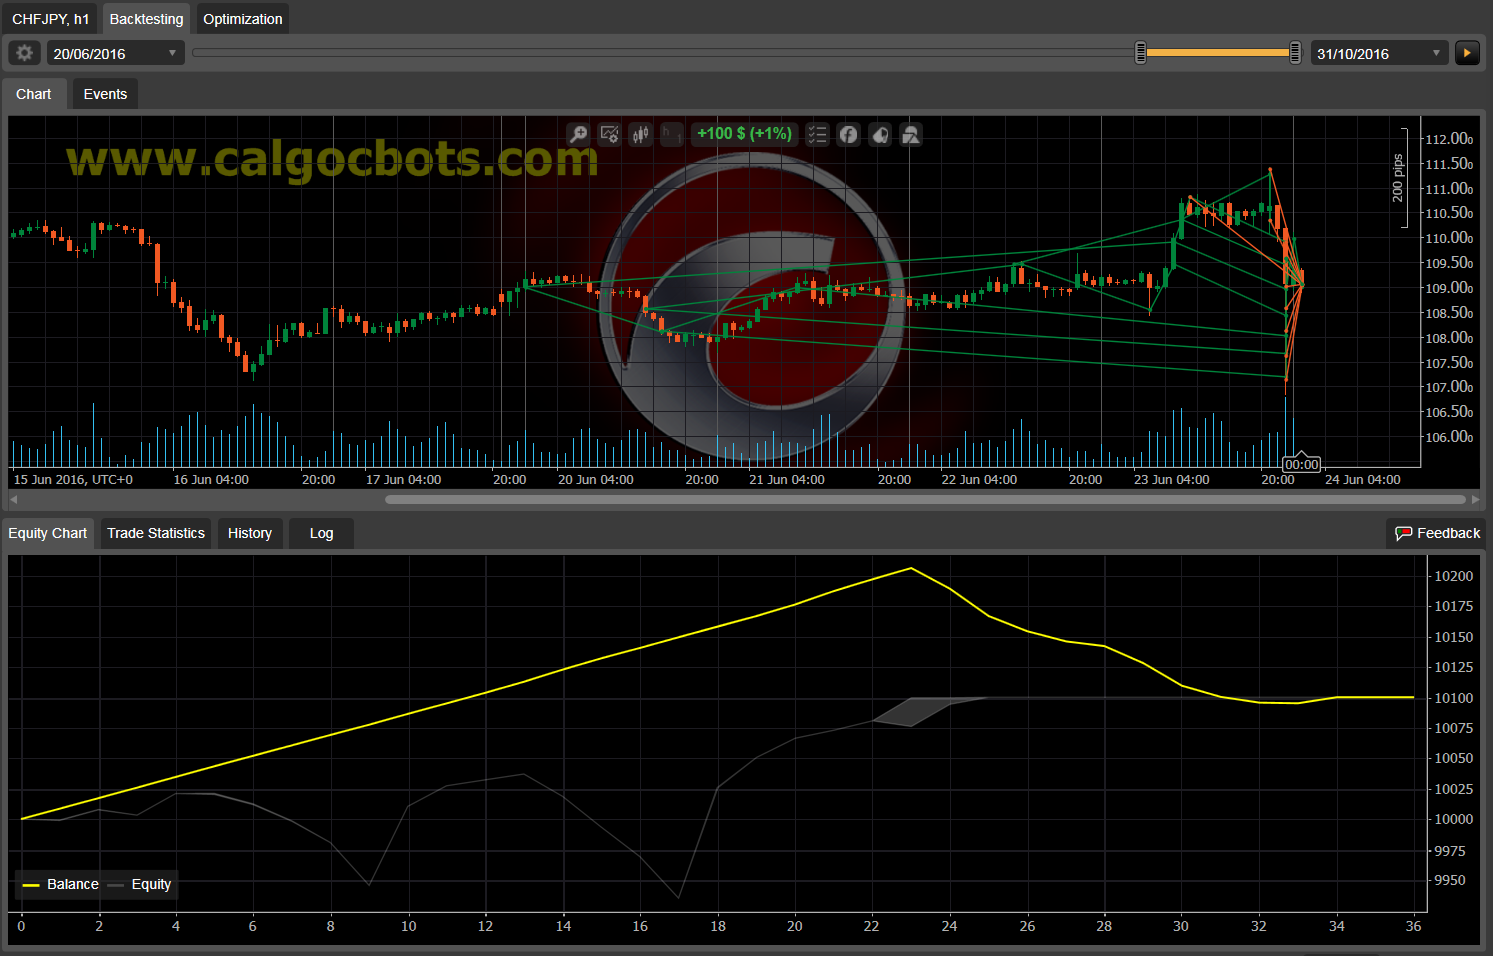 Dual Grid Hedge CHF JPY 1h cAlgo cBots cTrader 1k 100 45 90 - 11 b